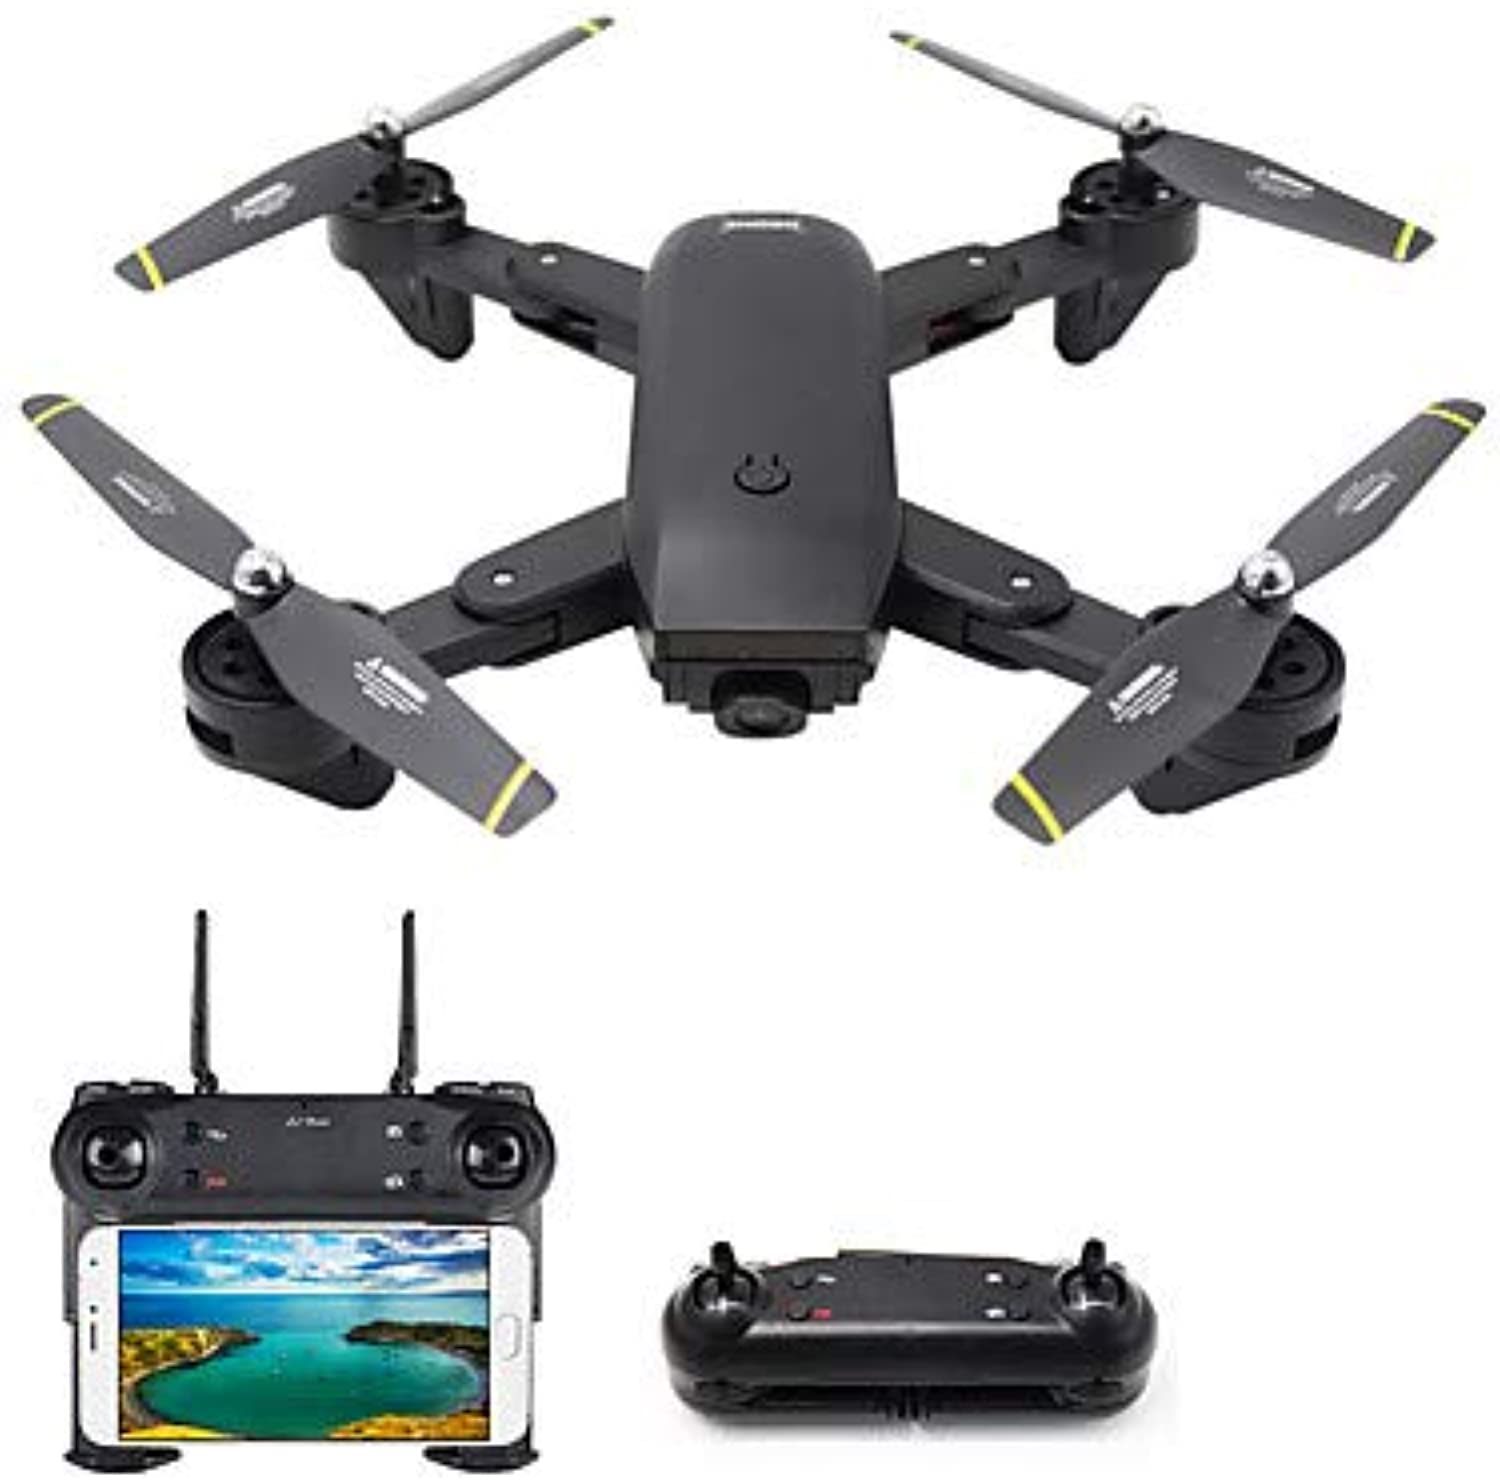 Shengshiyujia RC Drone 4CH 6 Axis 2.4G Mit HD Camera 2.0MP 1080P720P RC Quadcopter LED-Leuchten One Key to Auto-Return Auto-Takeoff RC Quadcopter Remote Controller Transmmitter USB-Kabel